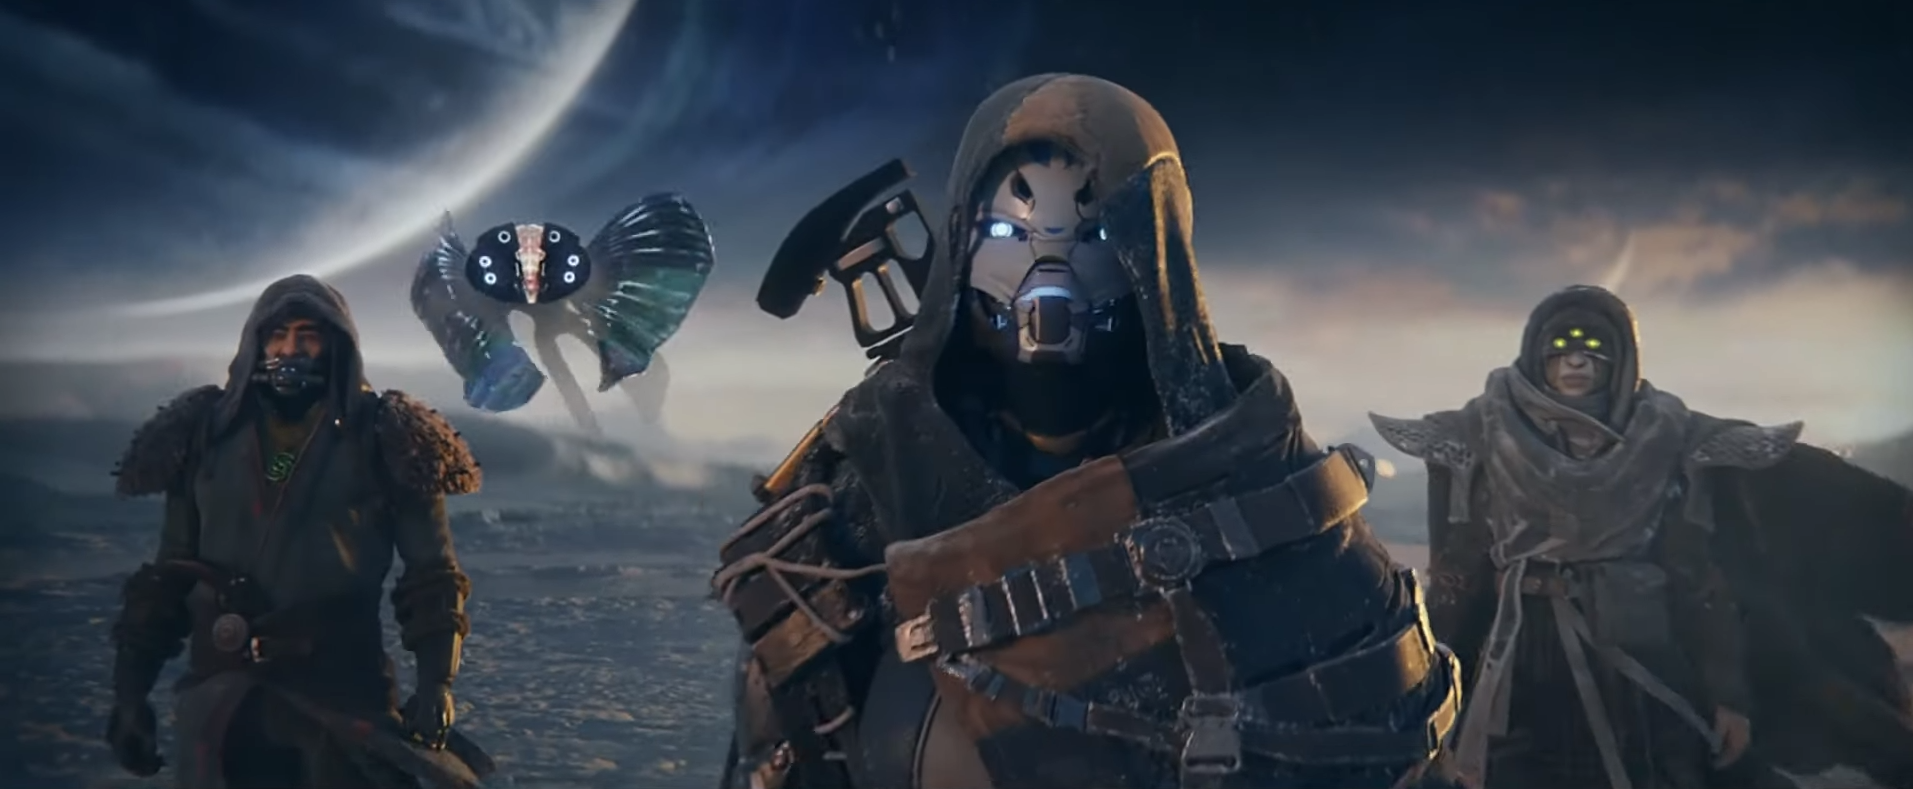 Destiny 2 is set to tap into its Light vs Darkness lore more in the Beyond Light expansion.